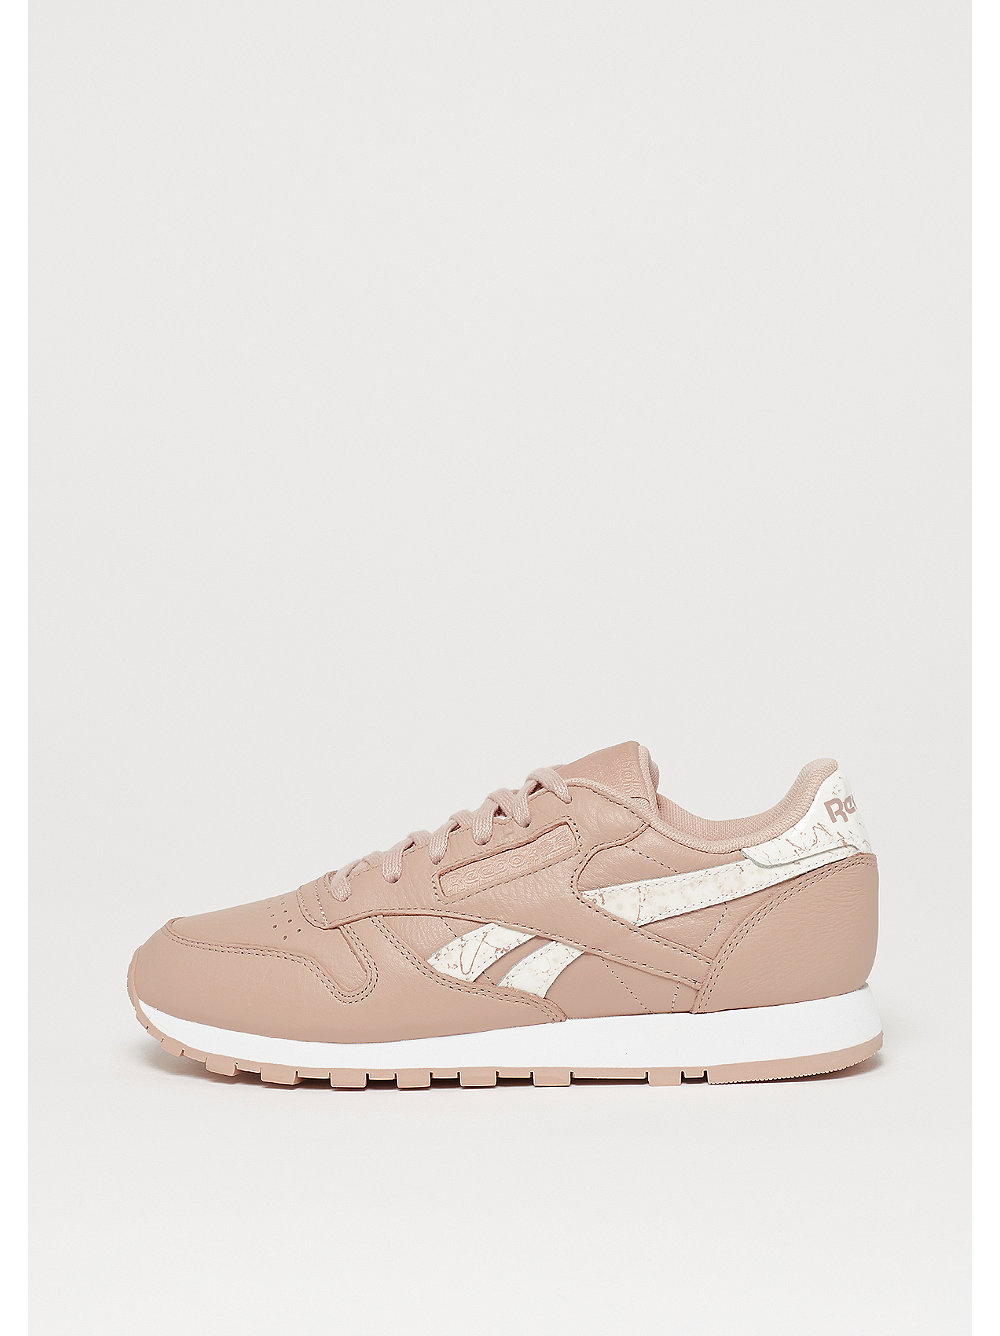 Classic Leather sidestripes-bare beige/white